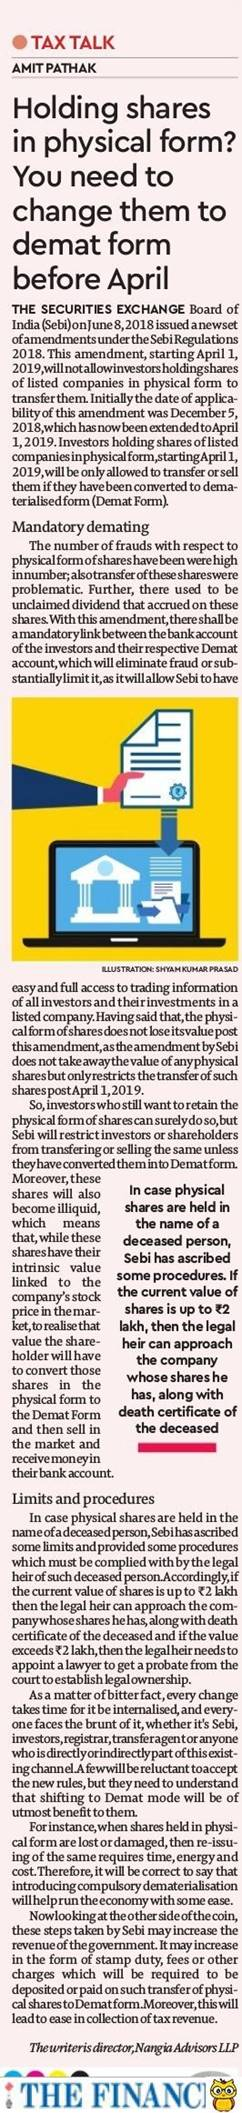 Holding shares in physical form? You need to change them to demat form before April- Amit Pathak